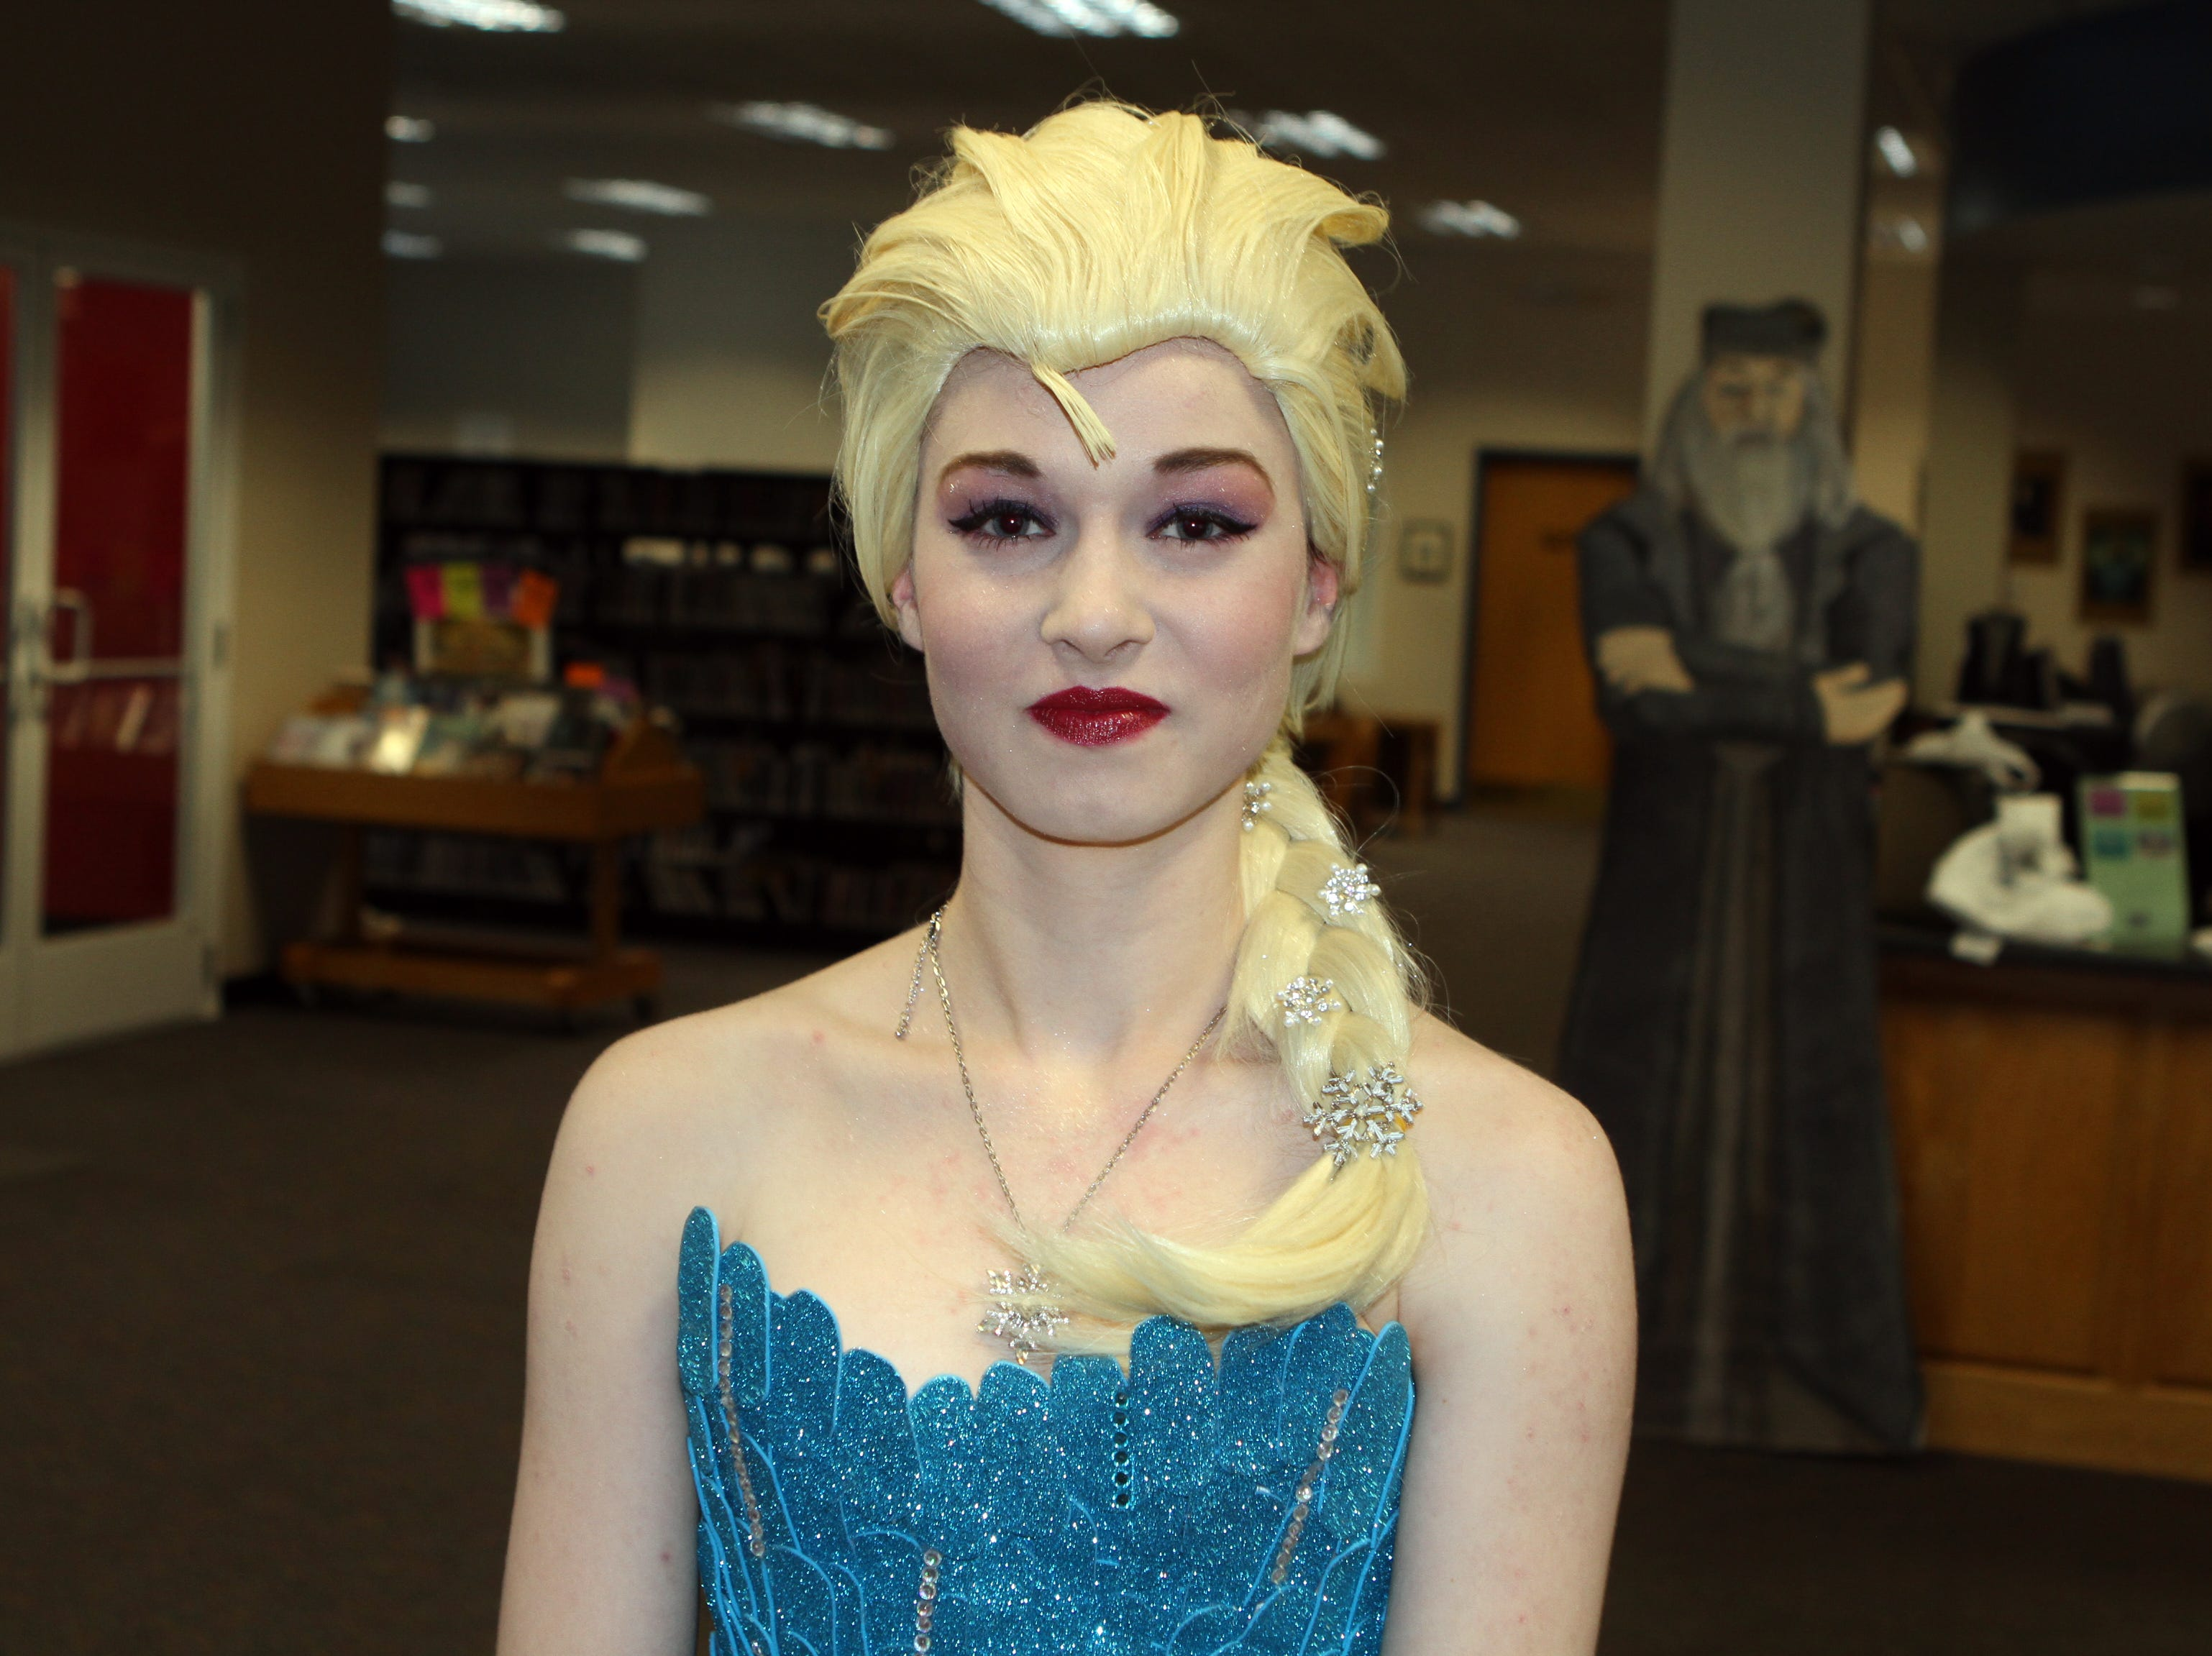 """Kayla Thompson as Elsa from """"Frozen"""" at CMC Public Library's annual Sci-Fi Expo on Saturday, November 3, 2018."""